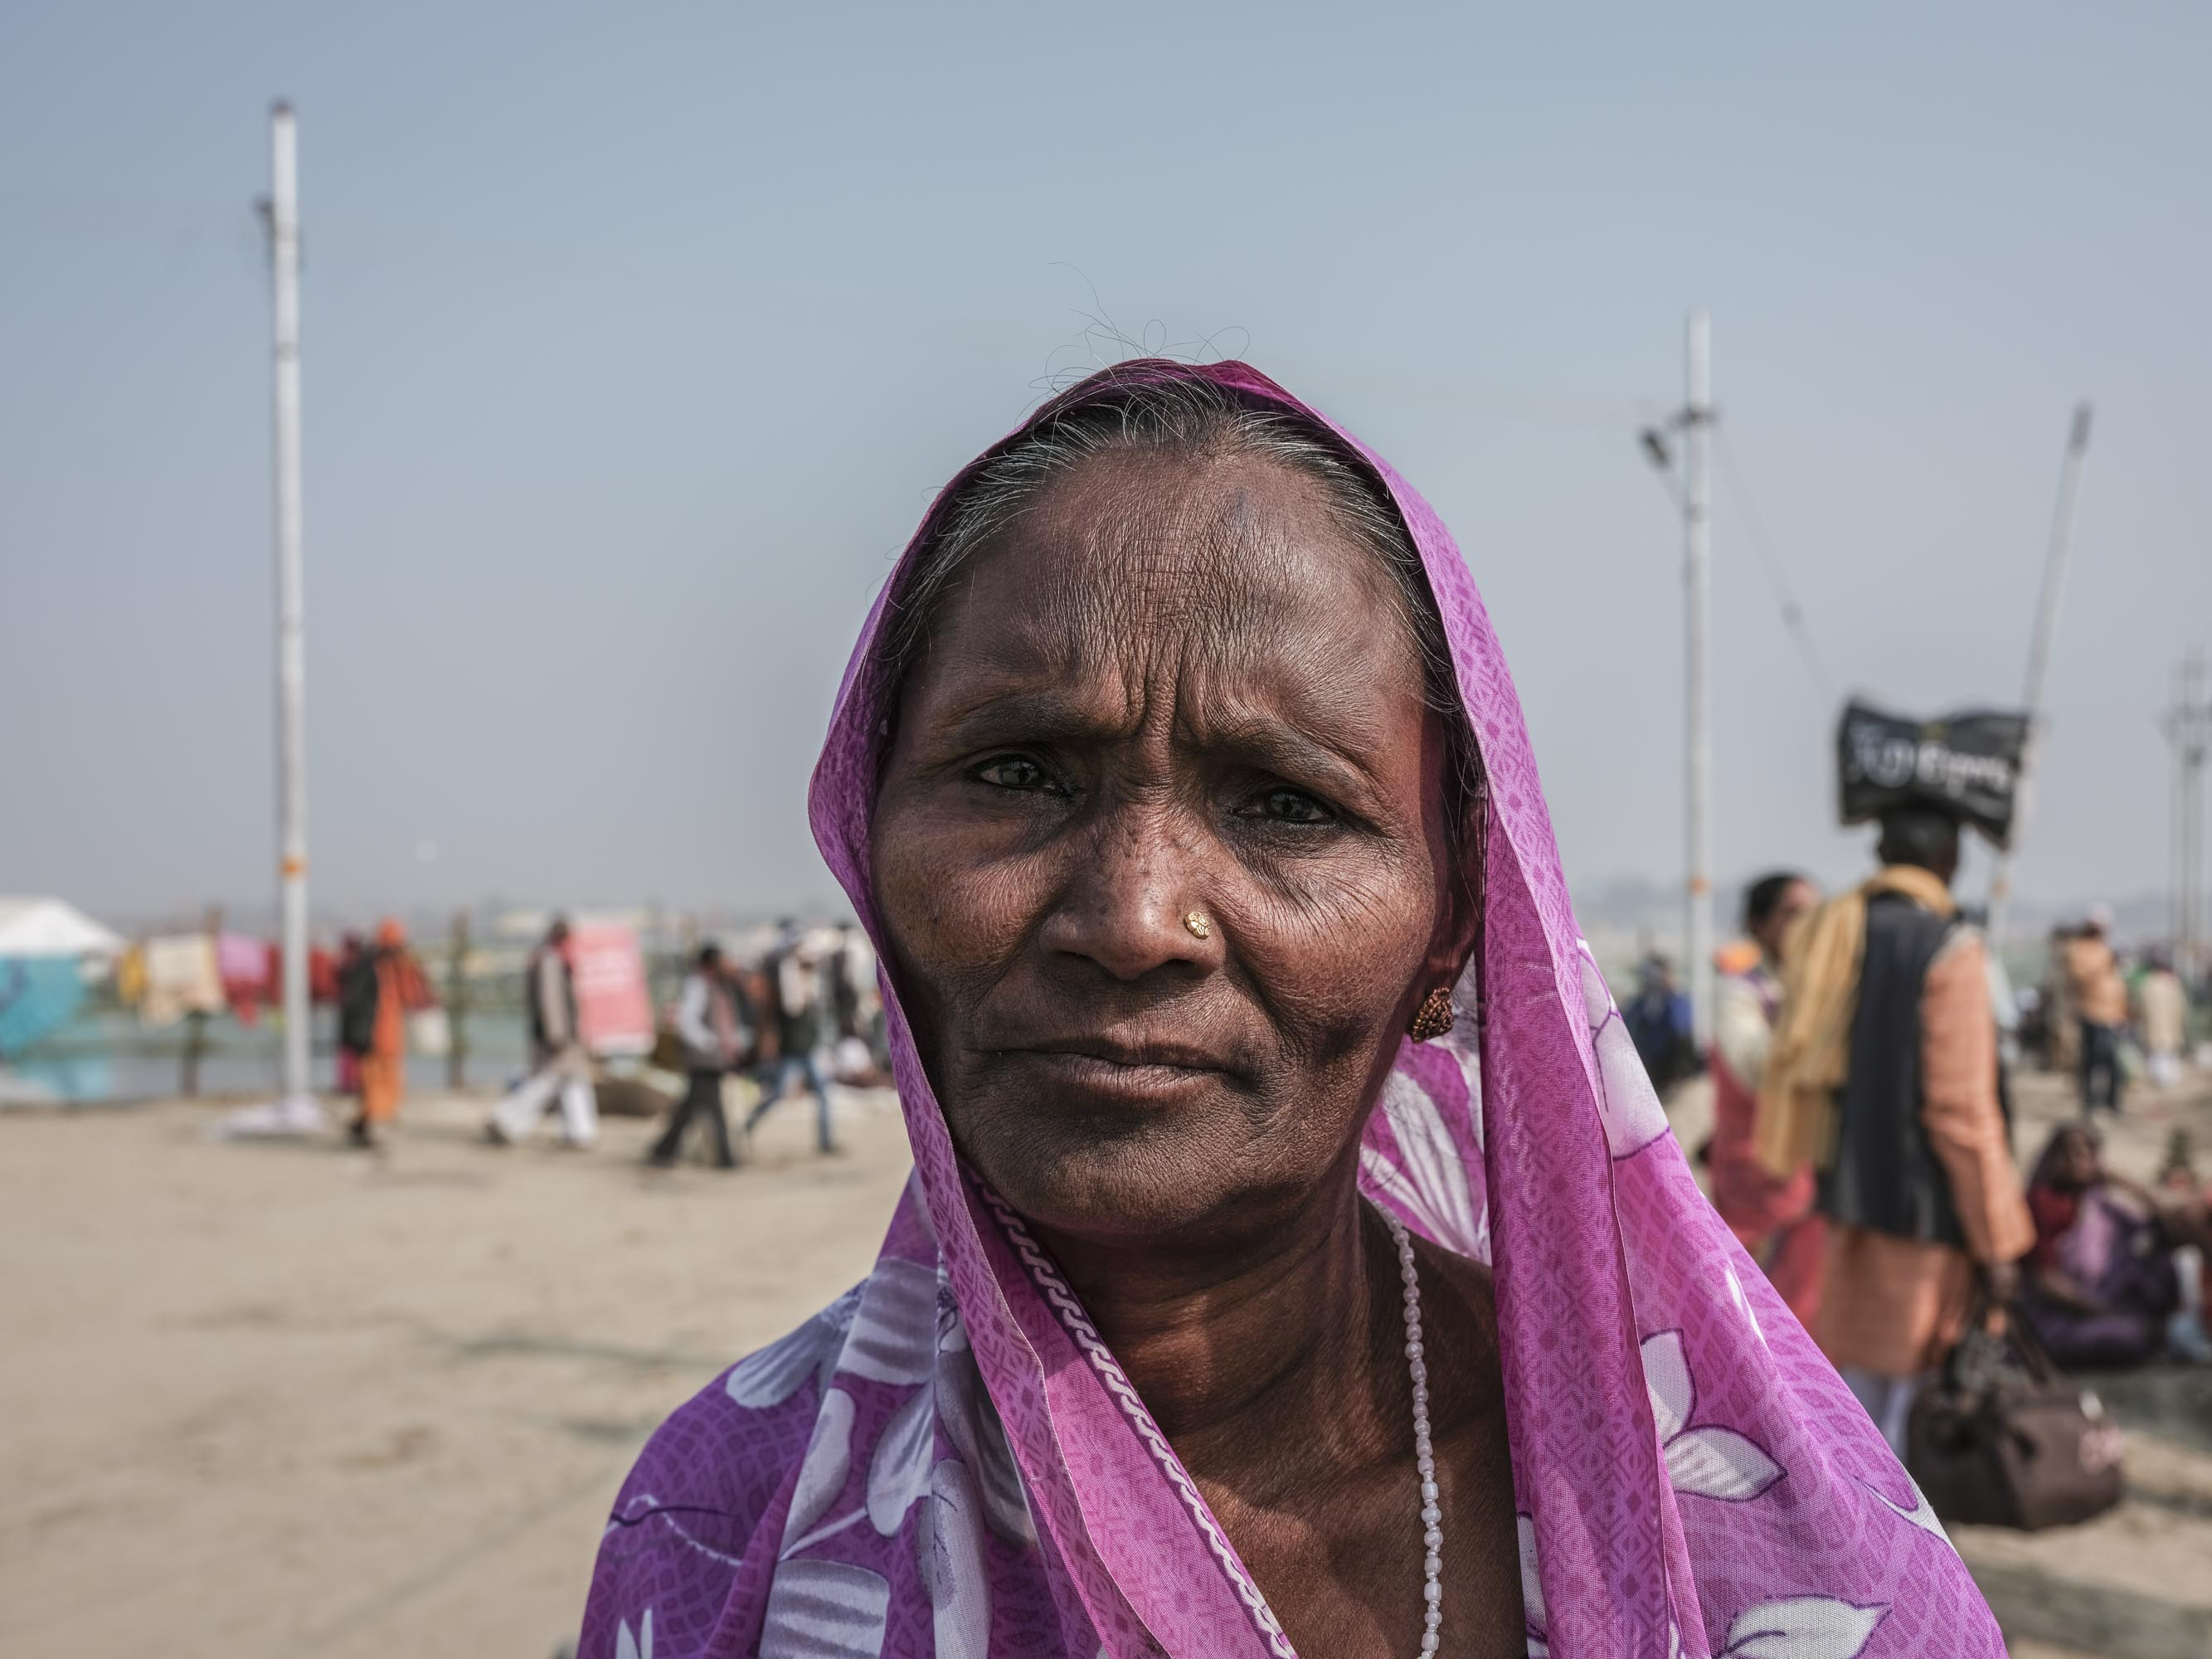 portrait woman color pink fabric pilgrims Kumbh mela 2019 India Allahabad Prayagraj Ardh hindu religious Festival event rivers photographer jose jeuland photography